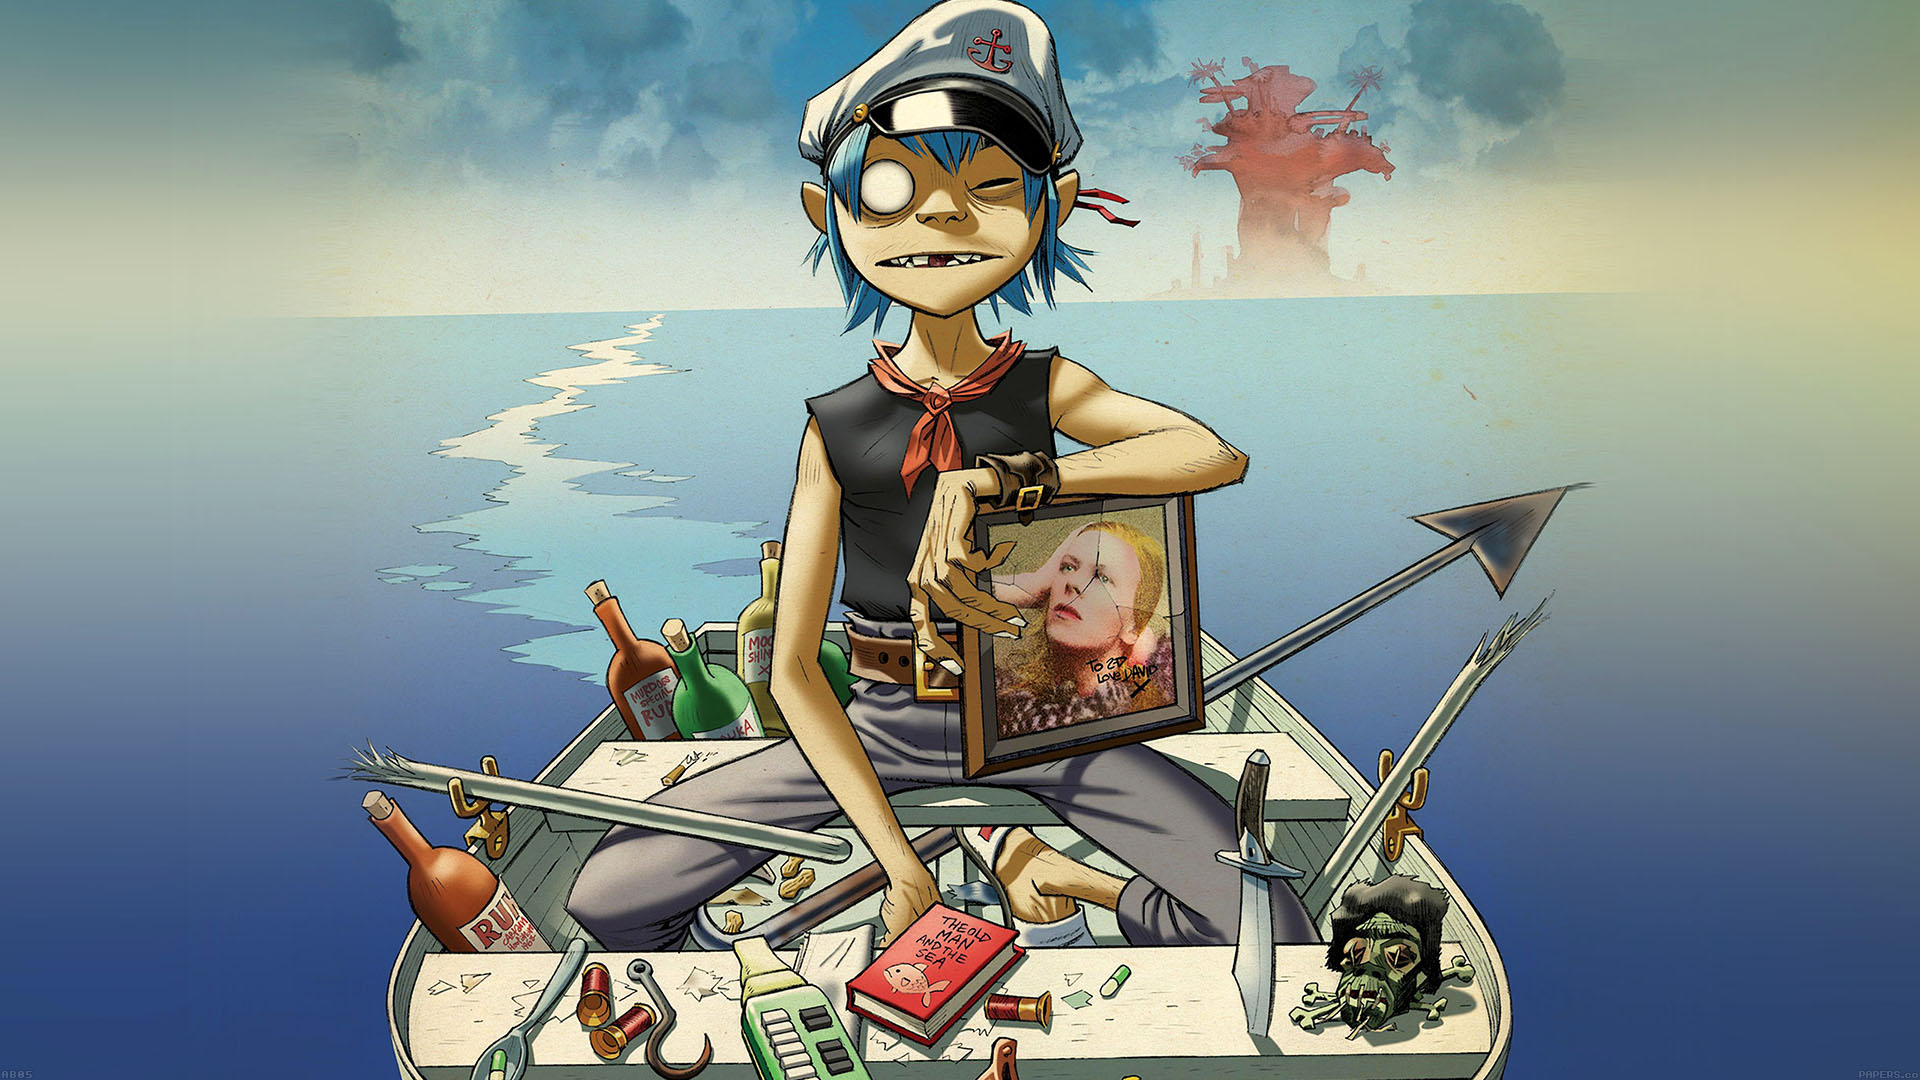 Fall Pictures For Computer Wallpaper Ab05 Wallpaper Gorillaz Boat Illust Music Papers Co